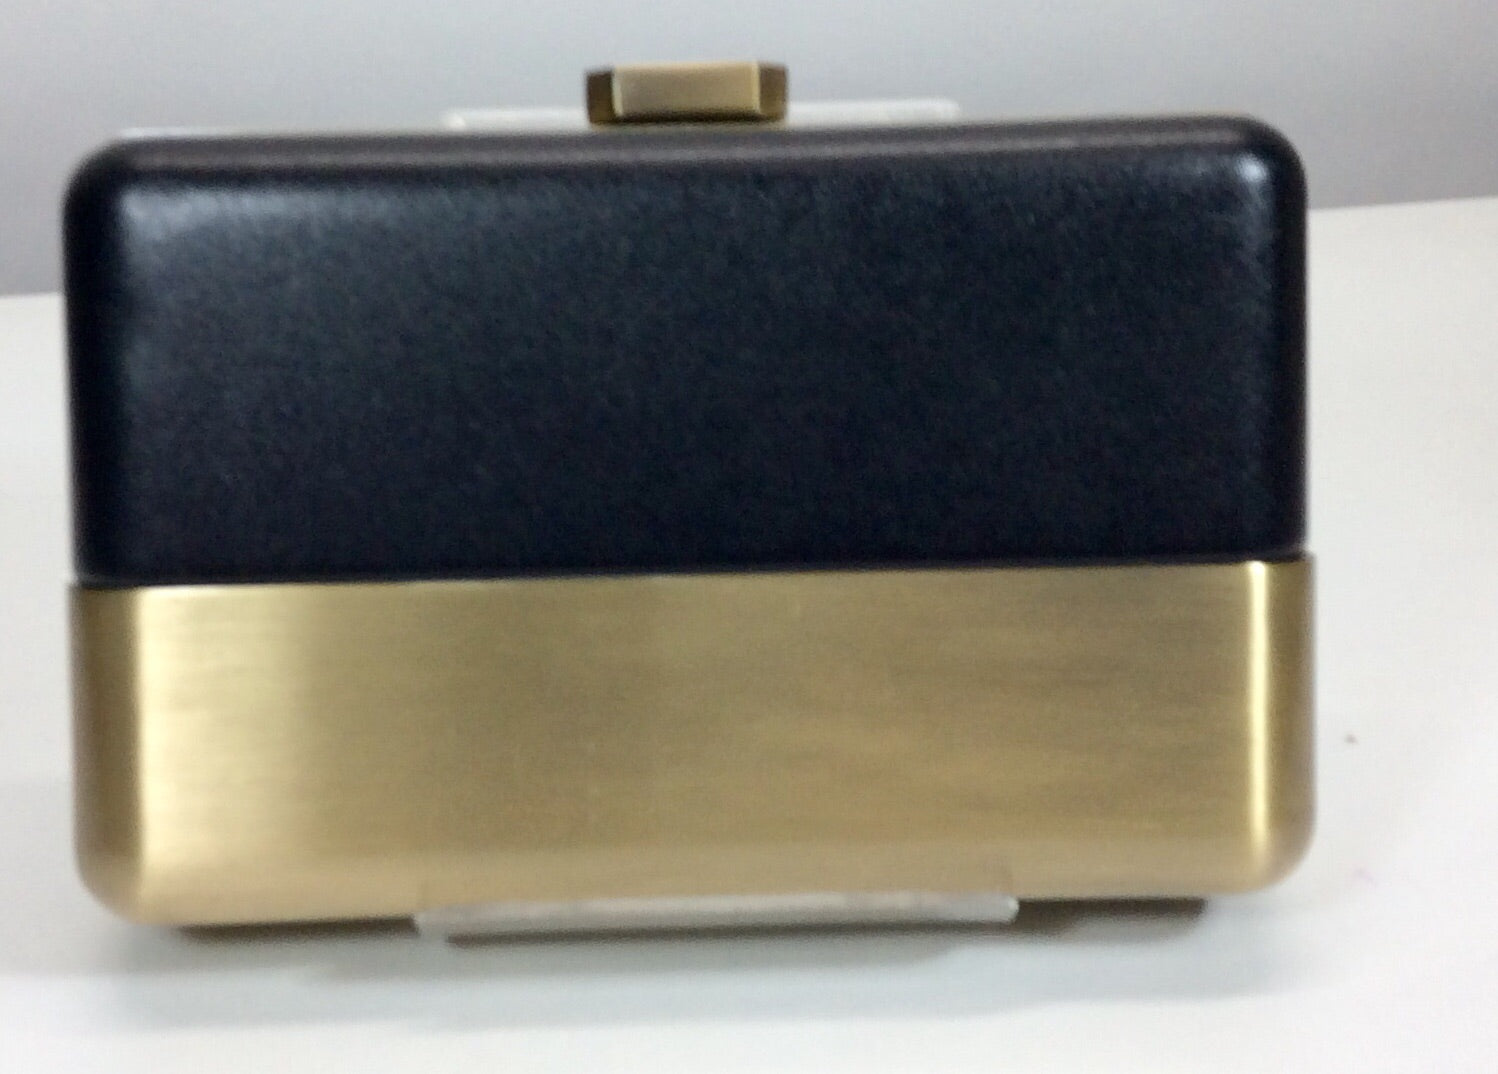 Gold and black box style evening bag